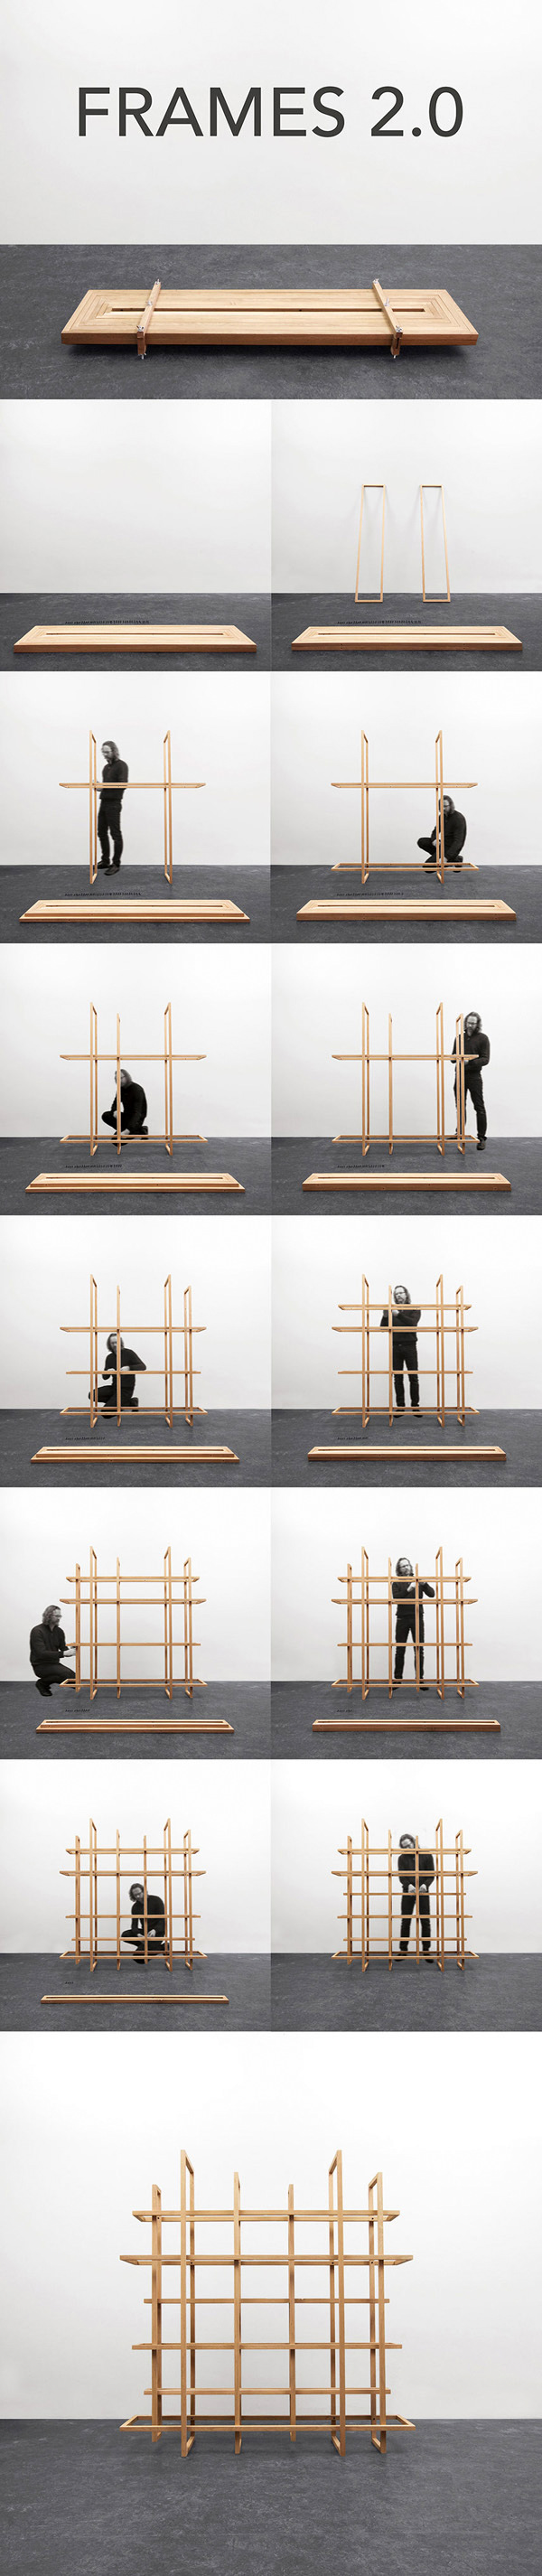 Frames 2.0 Wooden Shelf by Gerard de Hoop